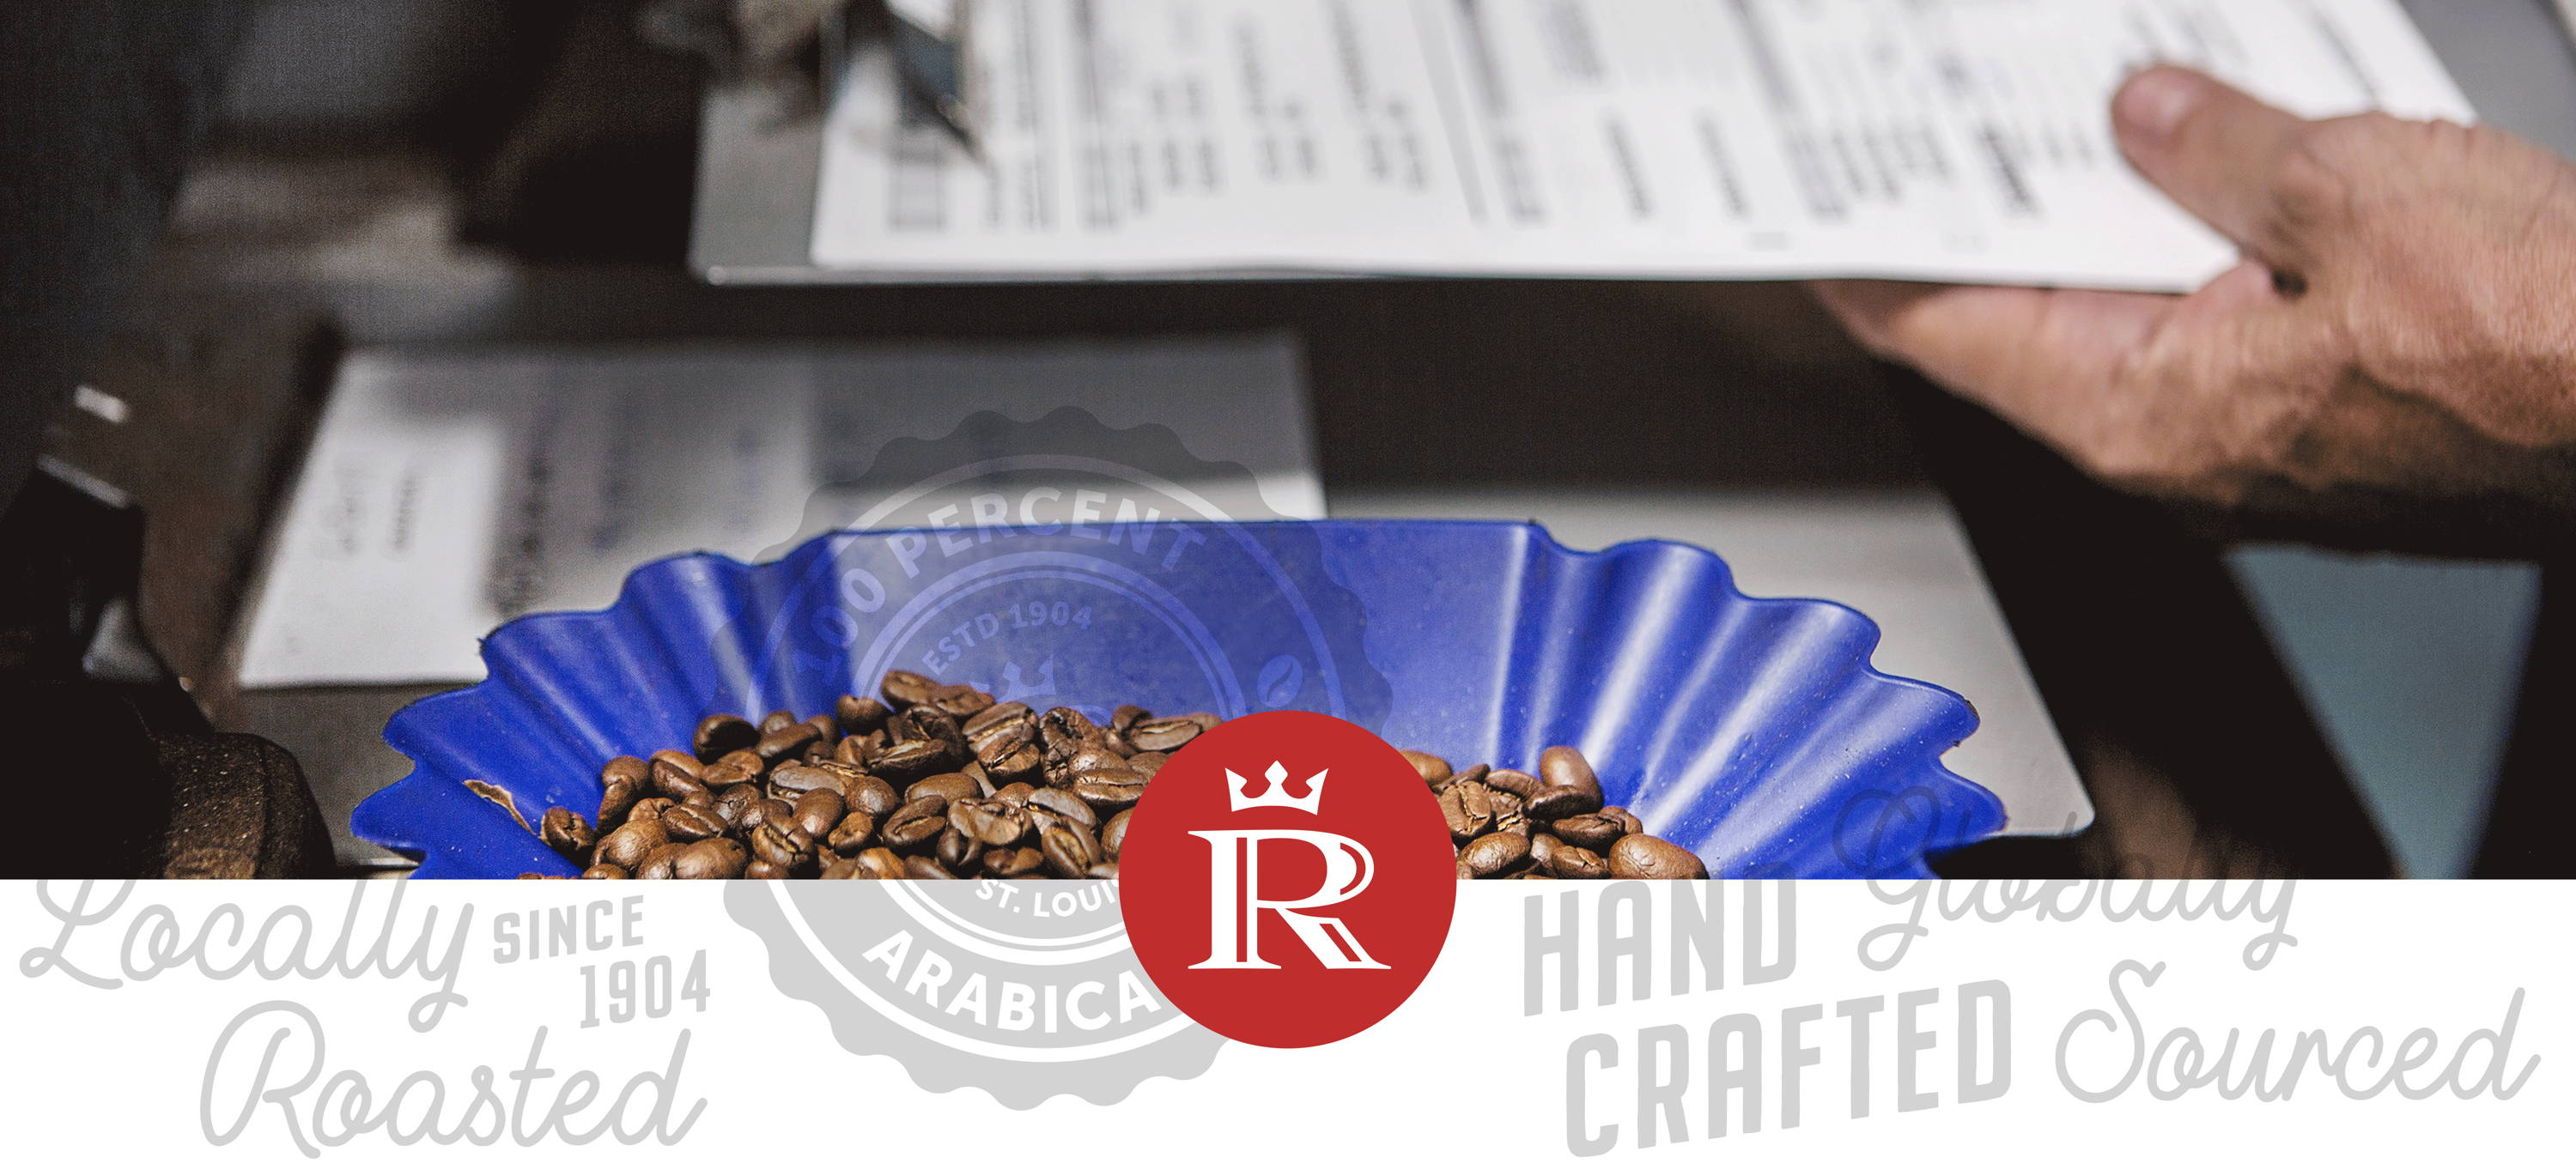 Ronnoco Coffee Beans in a Blue Tray